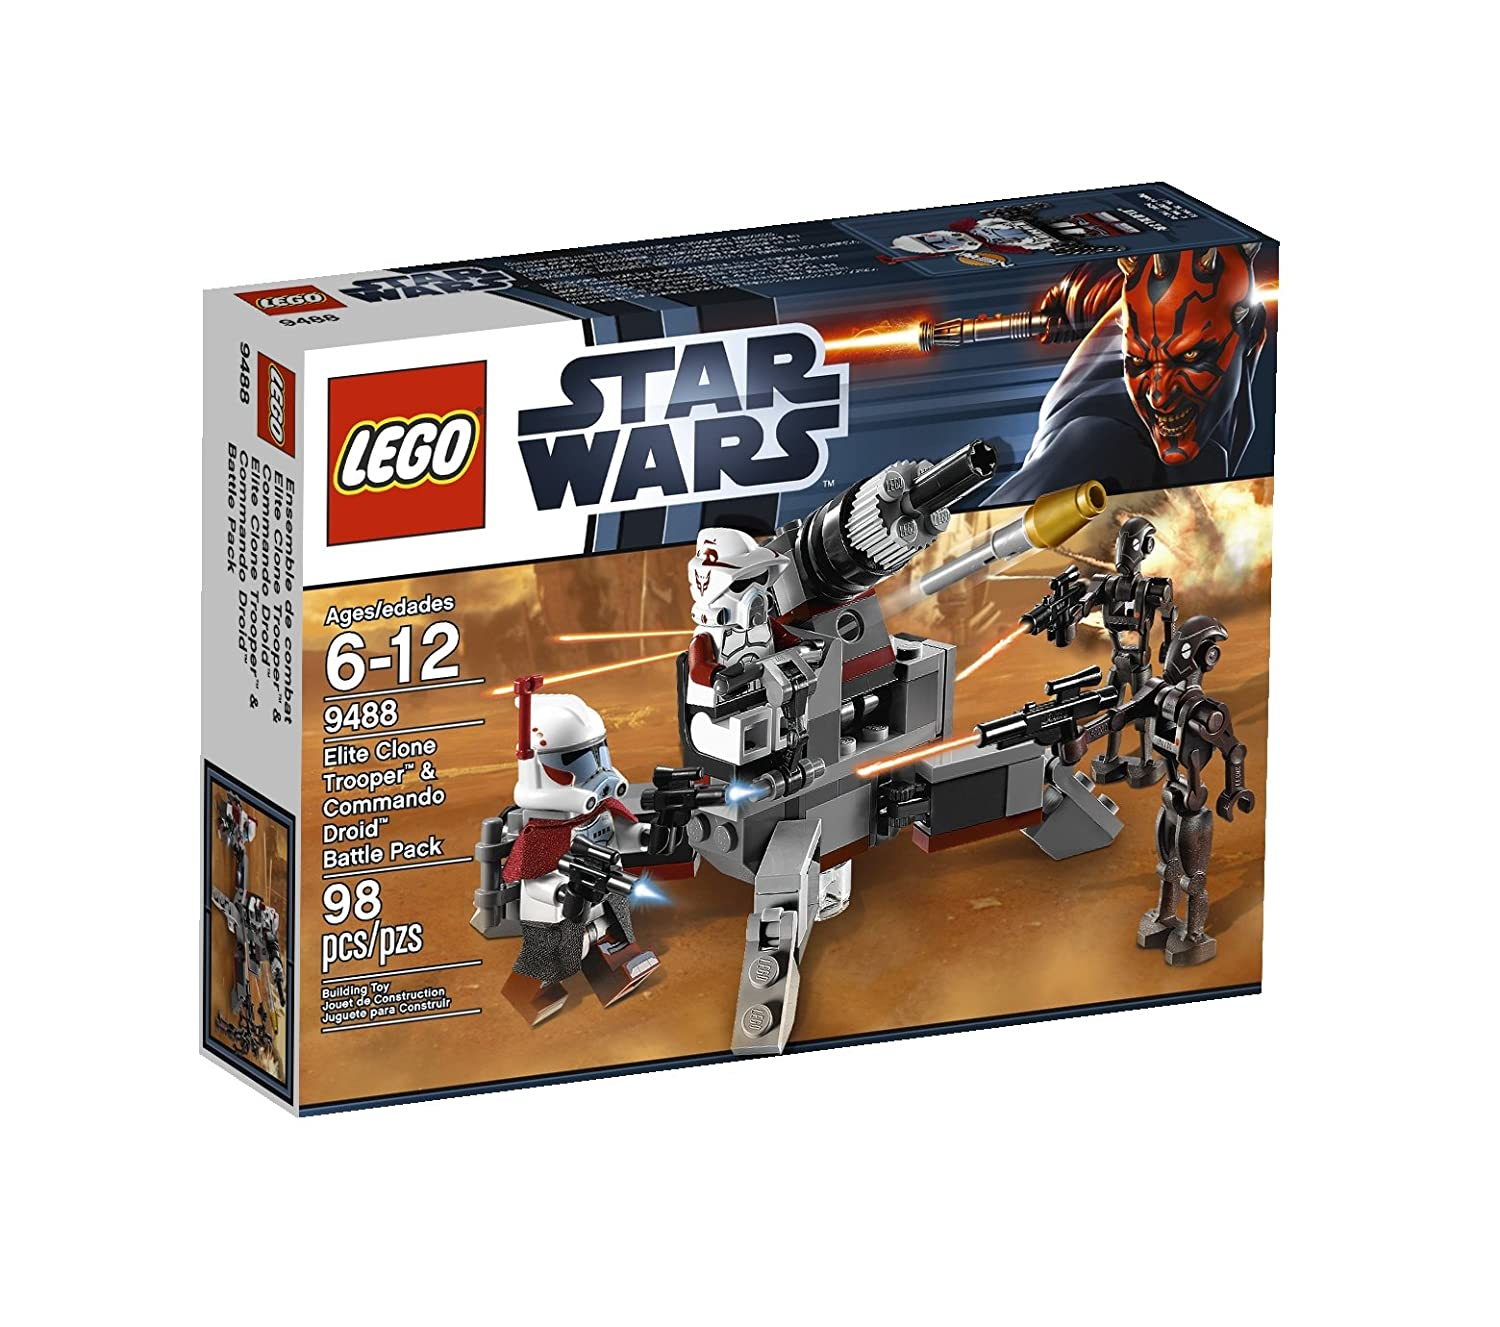 LEGO Star Wars Elite Clone Trooper and Commando Droid B 9488 $8.55